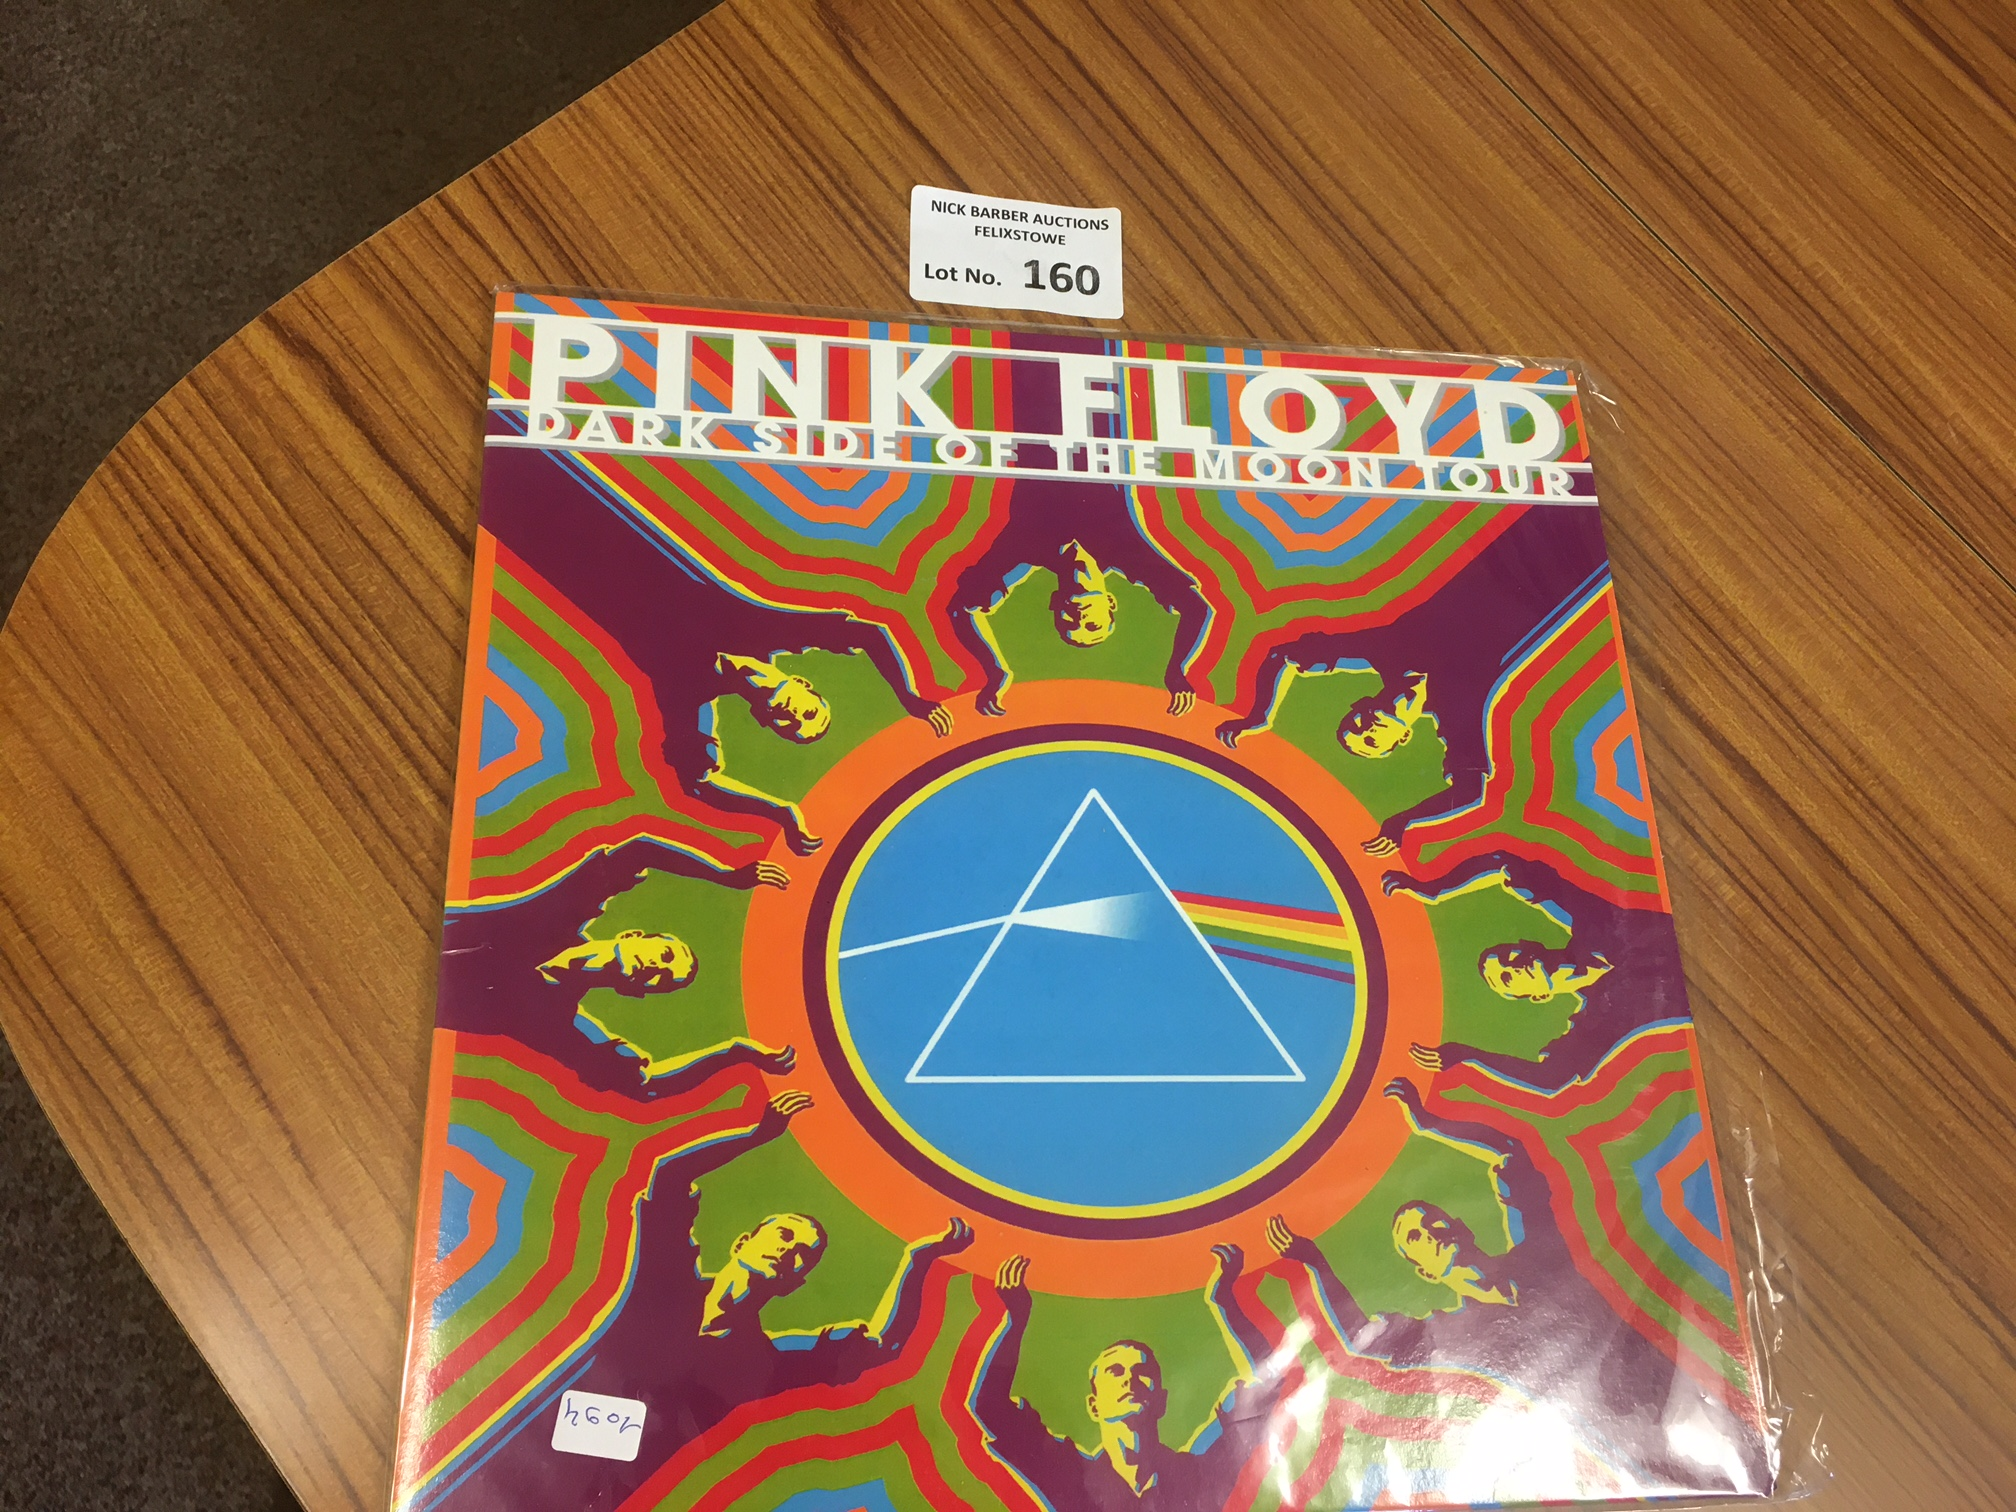 Records : PINK FLOYD - Rarities - Darkside of the